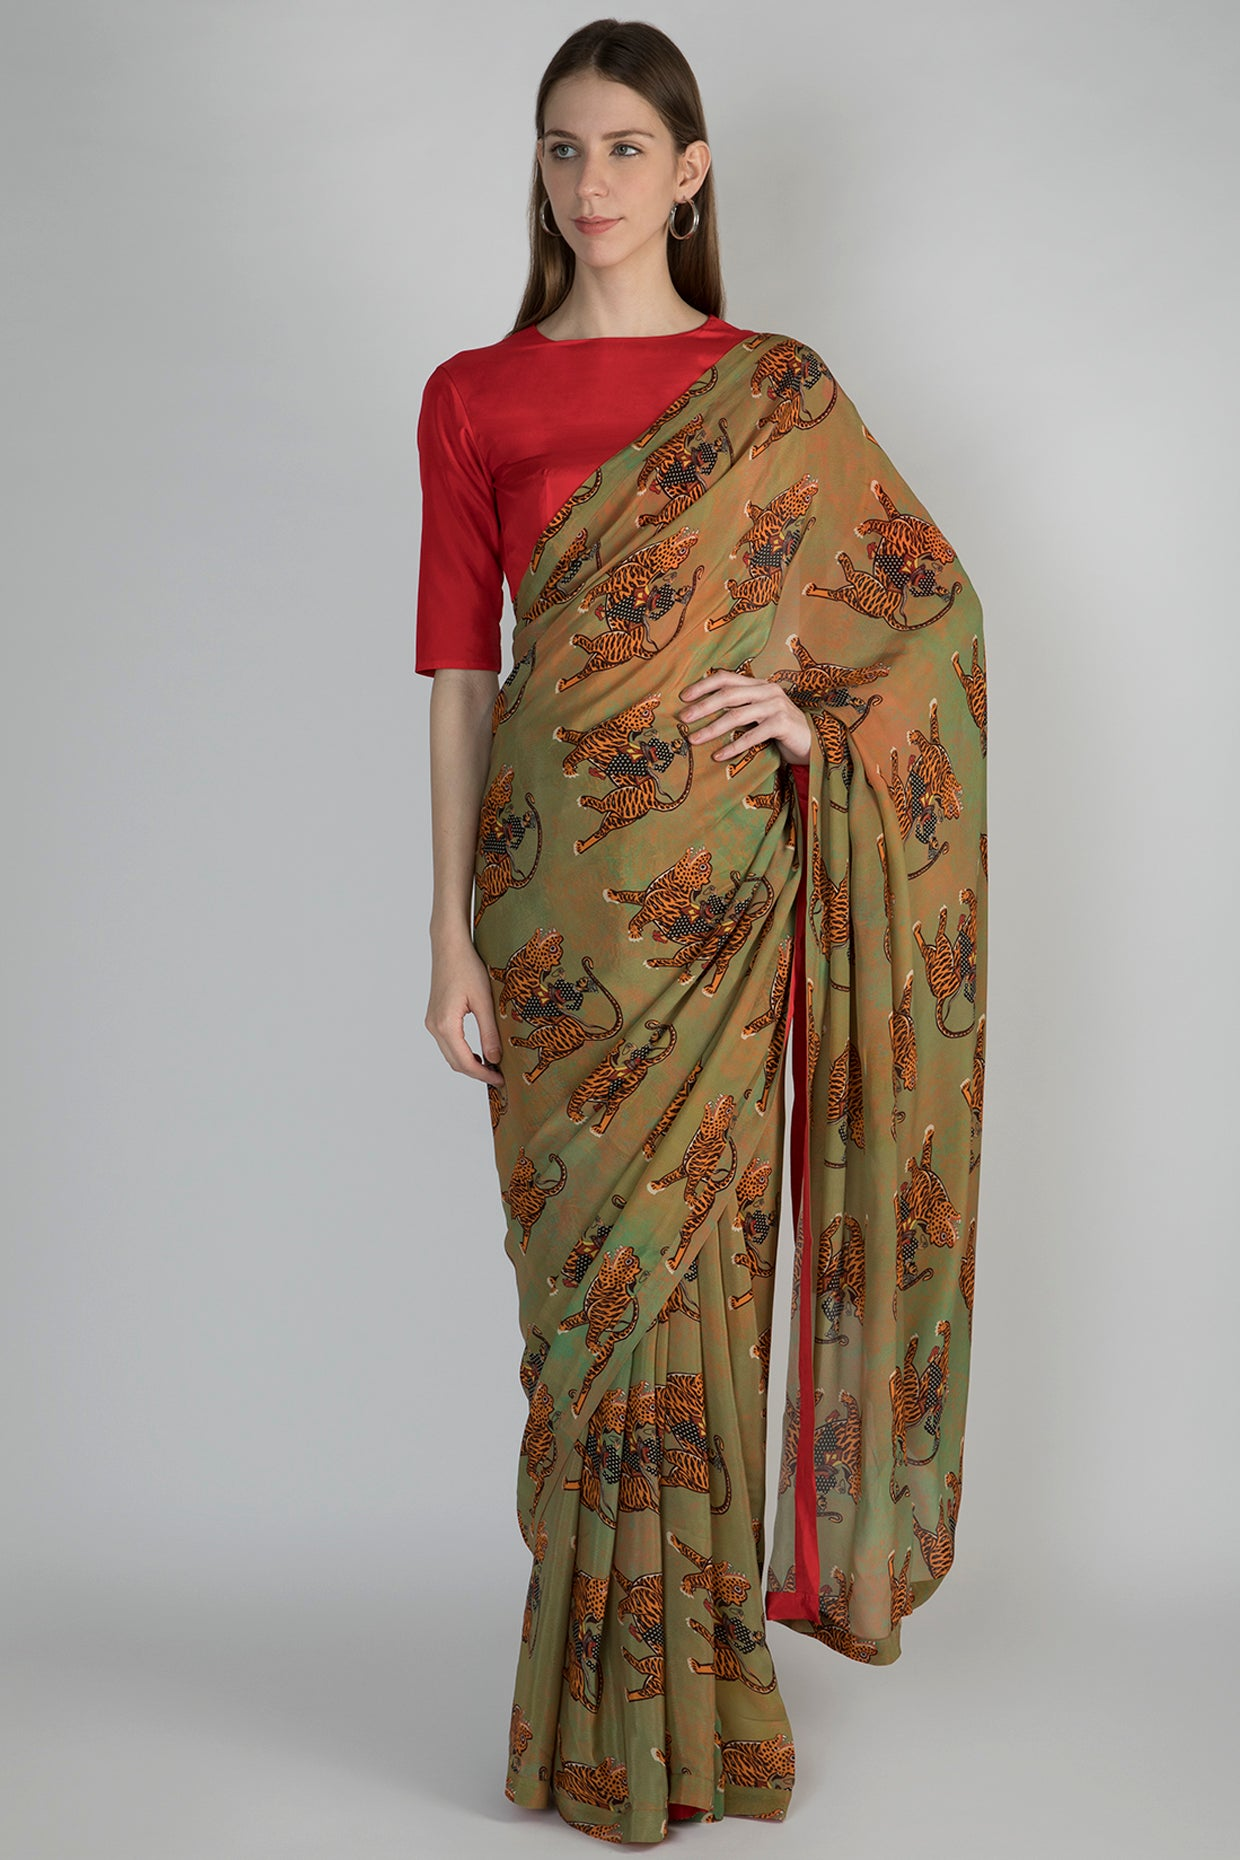 MINT SULTAN PRINT SARI WITH RED BLOUSE PIECE - The Grand Trunk